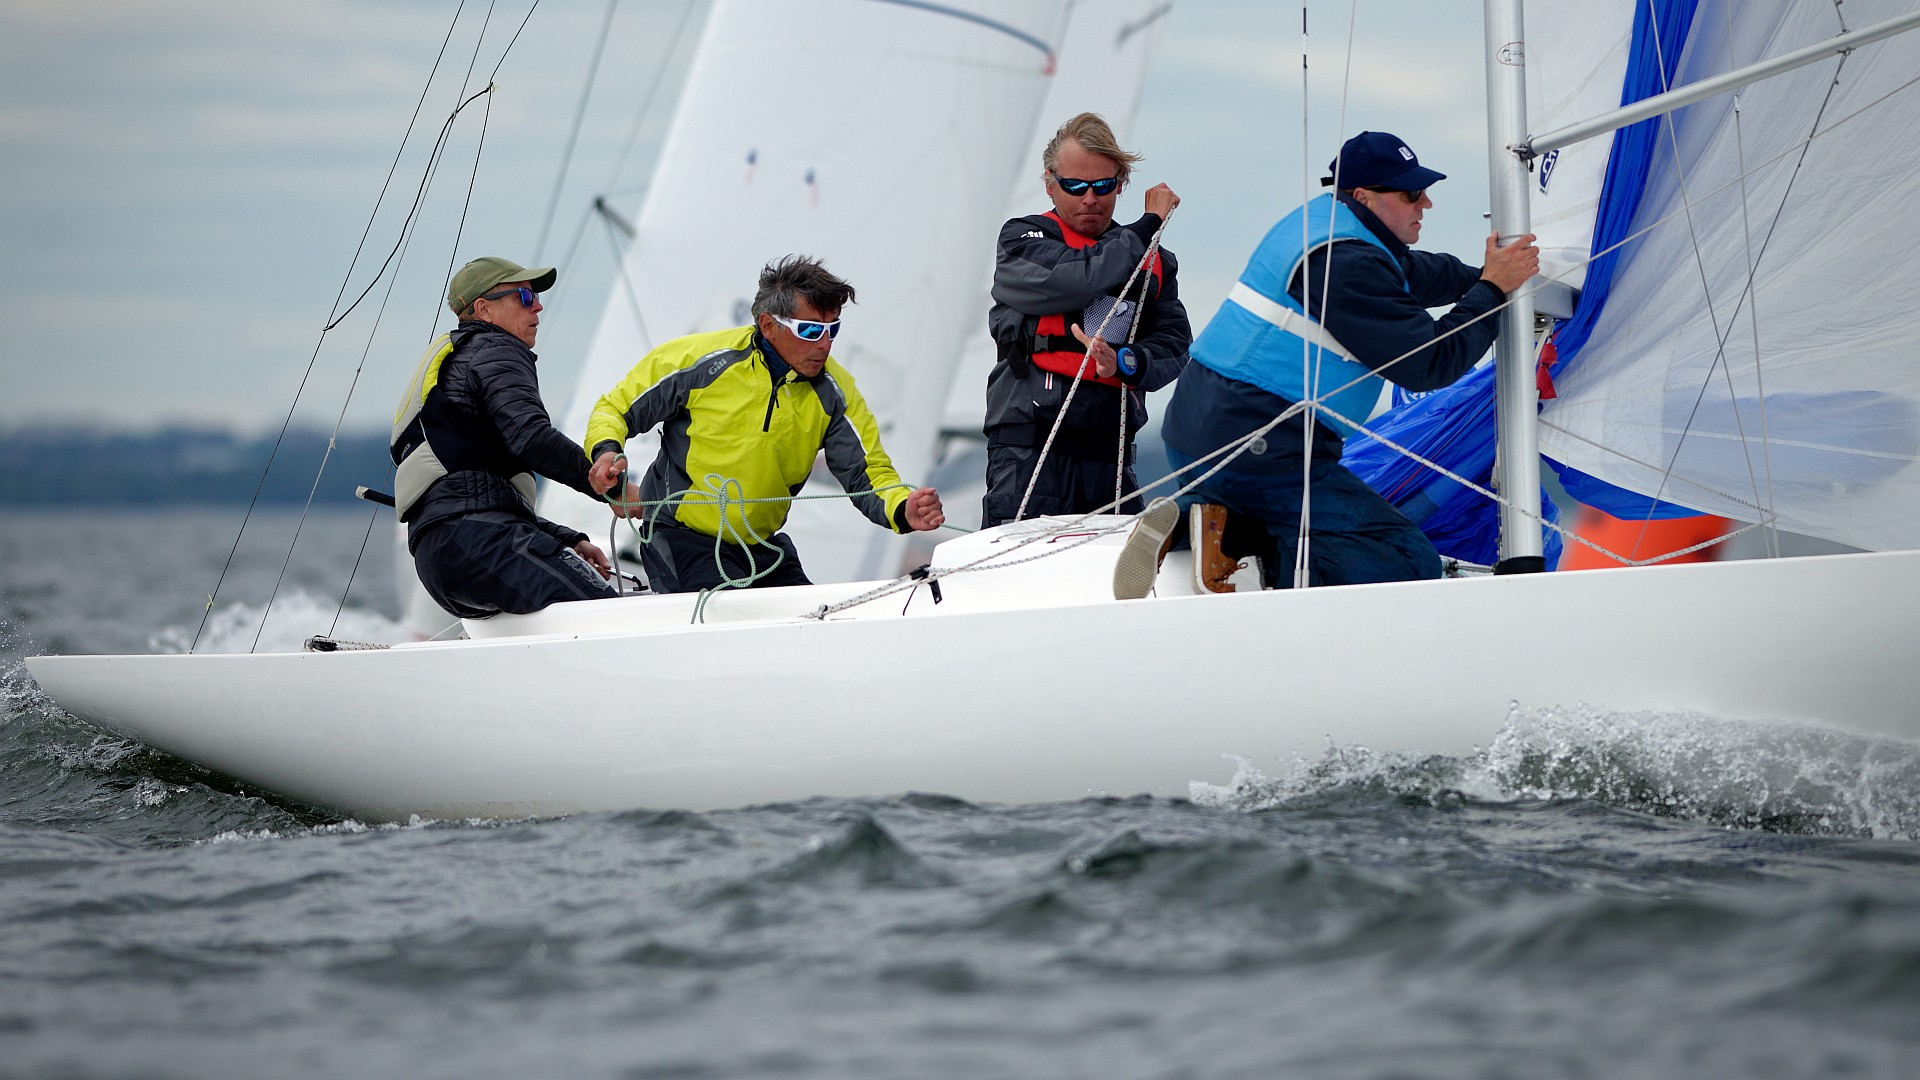 The Finnish Dragon class association together with the organizing club Helsingfors Segelklubb is busy preparing for the Dragon Gold Cup 2018 in Helsinki. The Worlds best dragon sailors will race for the Gold Cup 20th to 28th of July 2018.    Here some photos (31) from the Dragon Spring Cup   At the same […]